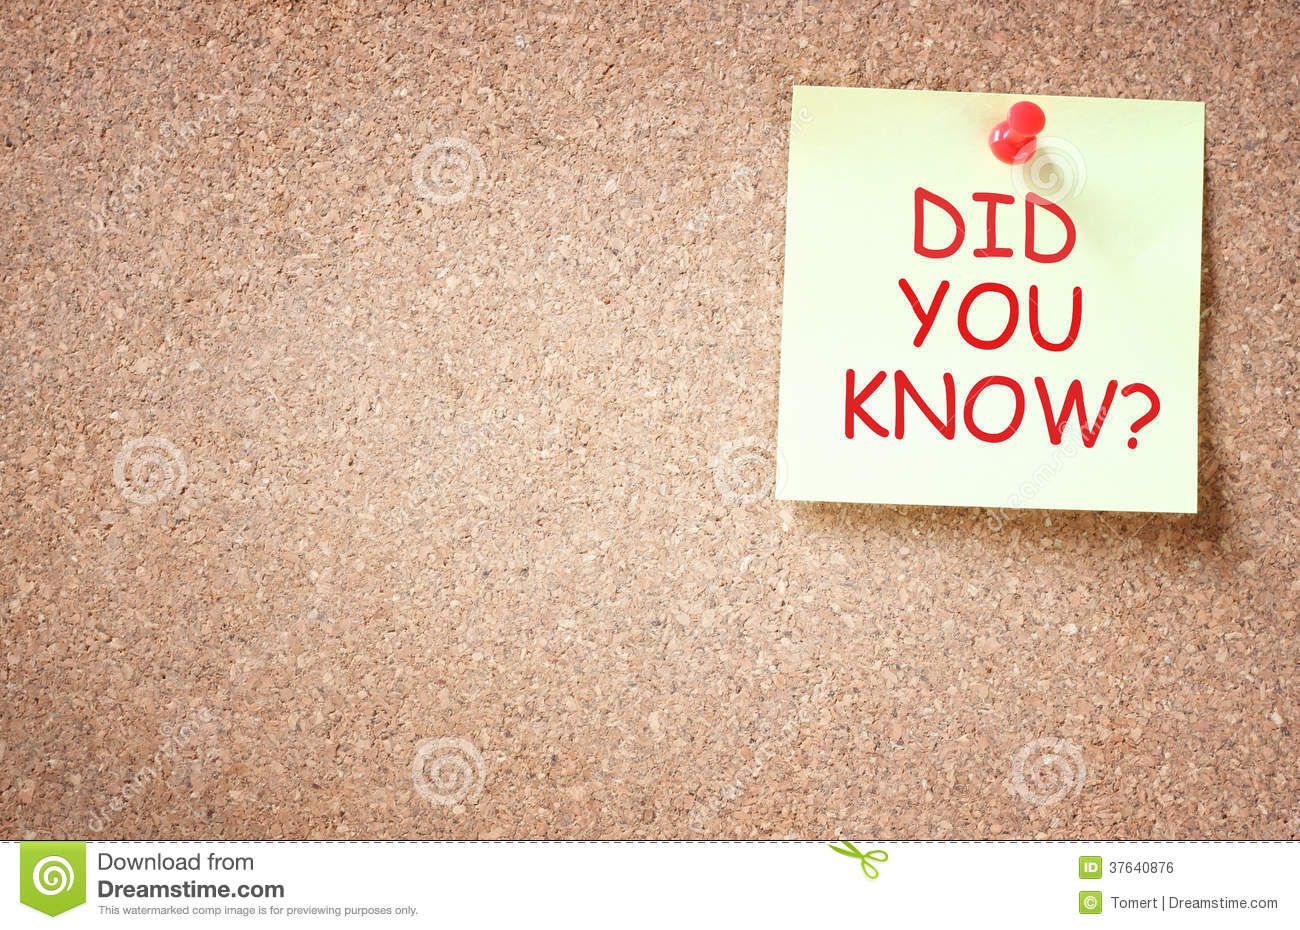 Compress JPG file to a specified size in Kilobytes or Megabytes - IMG Did you know photos